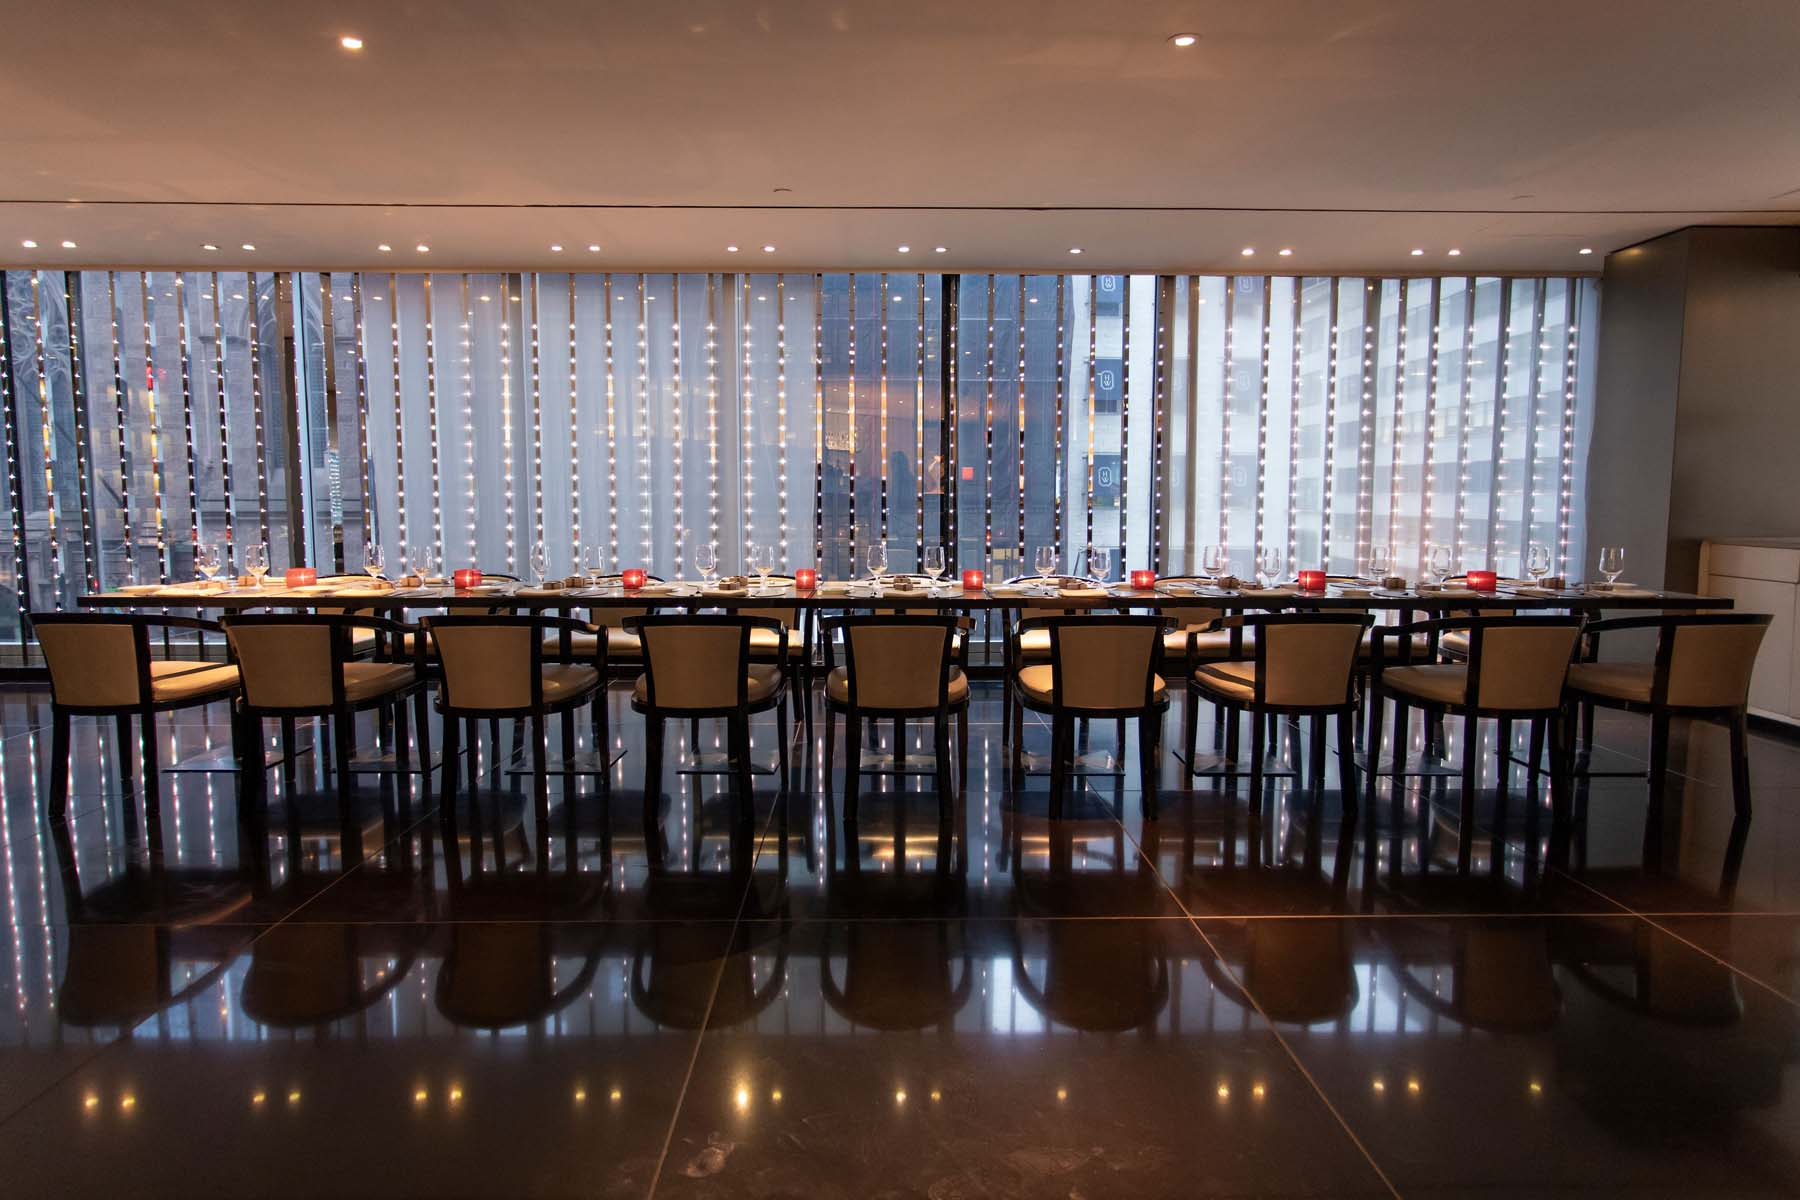 Armani / Ristorante 5th Avenue event space in New York City, NYC, NY/NJ Area